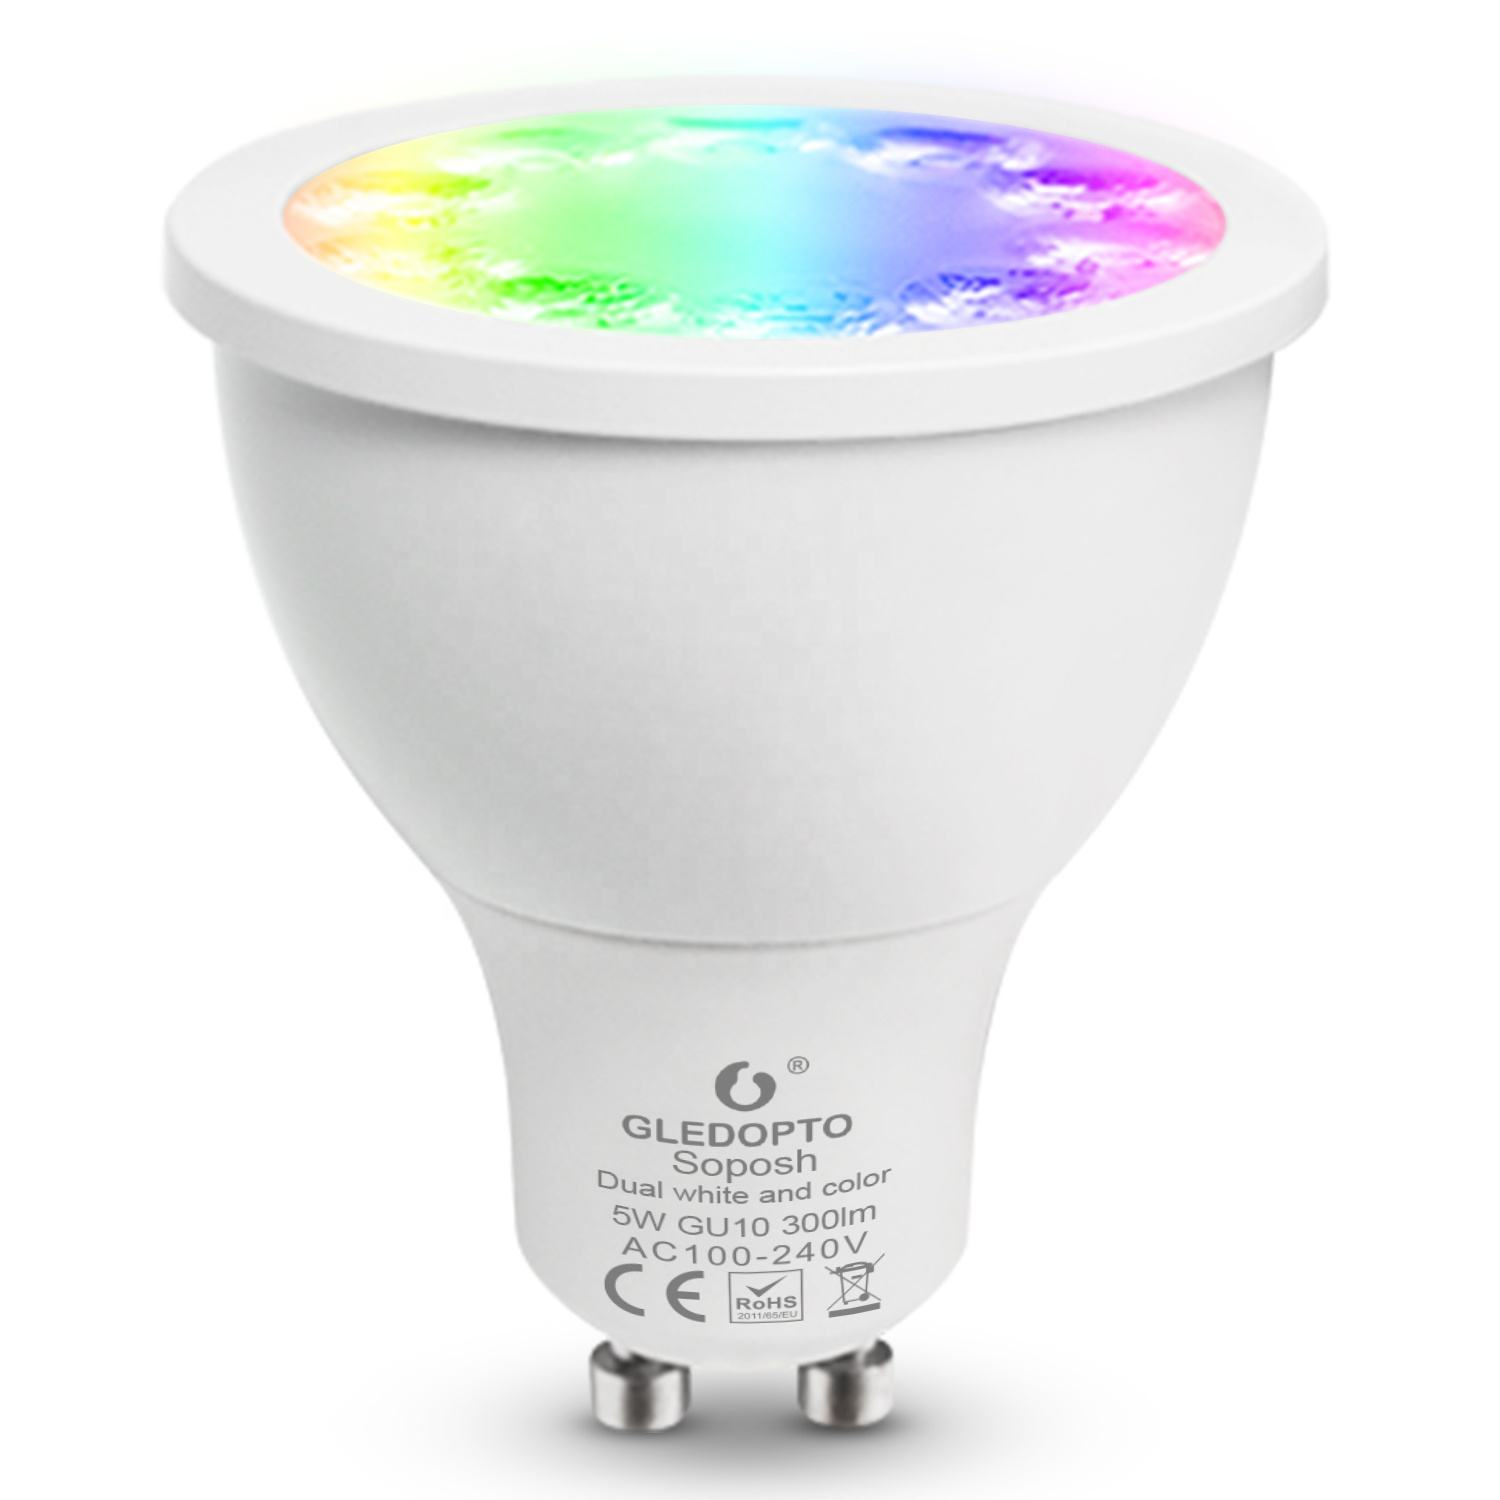 GU5.3 MR16 E27 5 W DC12V AC100-240V 350LM 듀얼 화이트 2700-6500 K ZigBee (<span class=keywords><strong>P</strong></span>) hilips H UE GU10 LED 스포트라이트